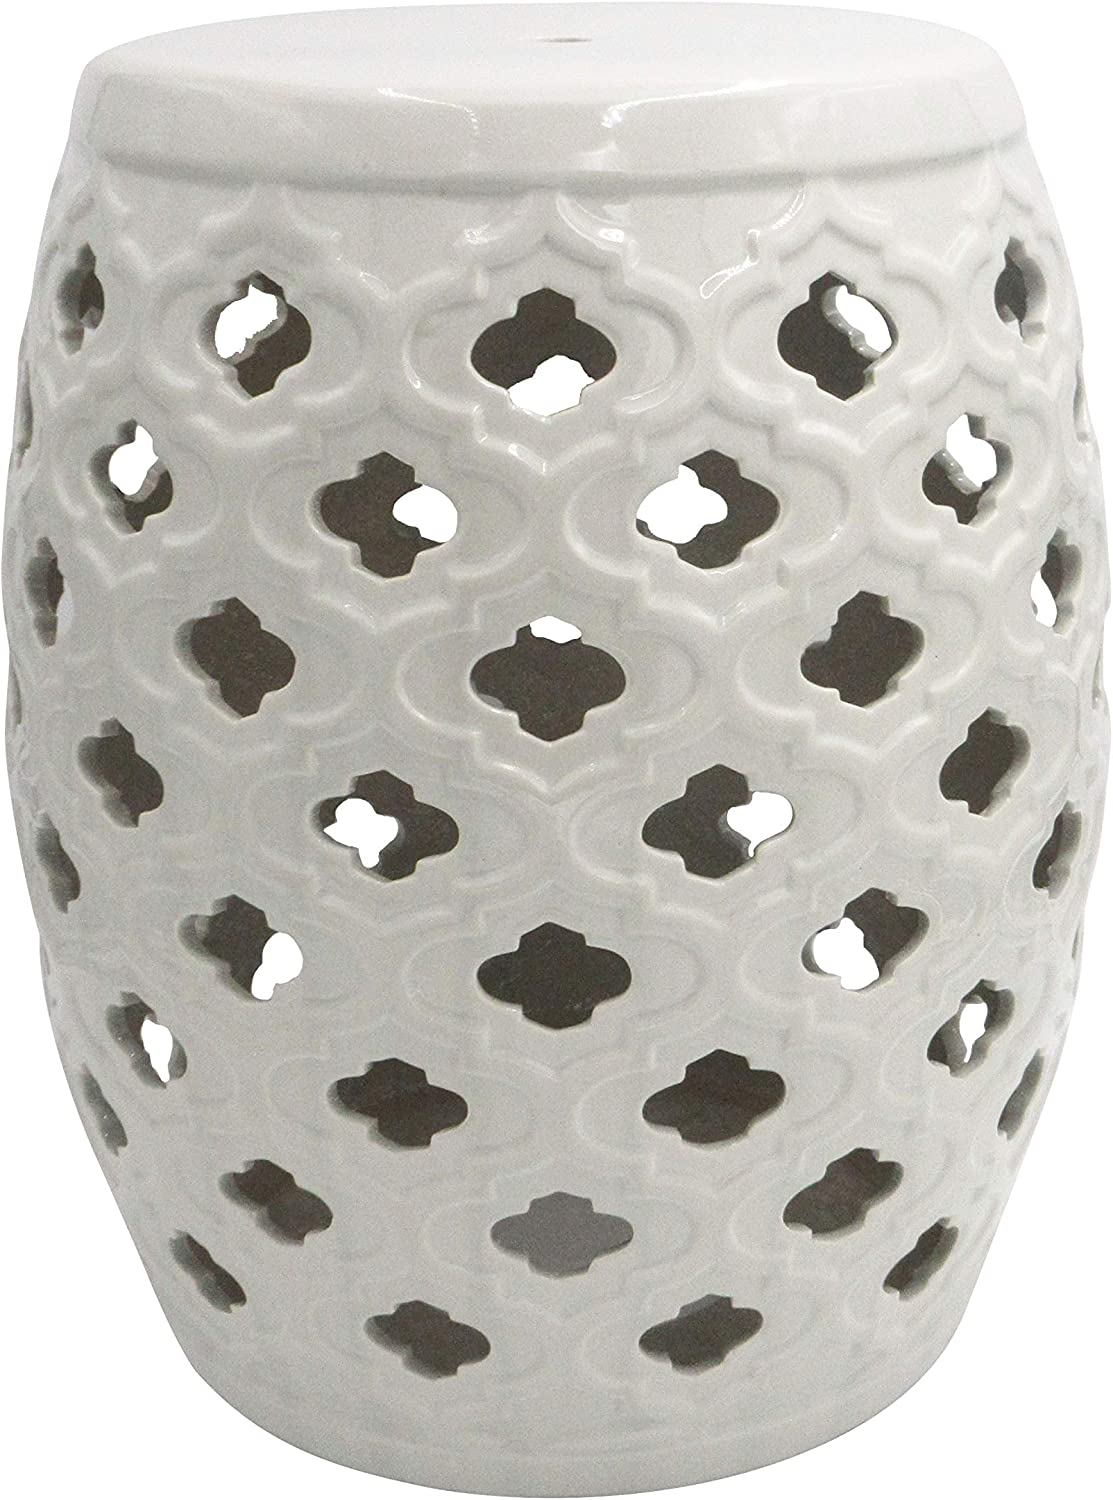 "Ravenna Home Moroccan-Pattern Ceramic Garden Stool or Side Table, 16""H, Off-White"